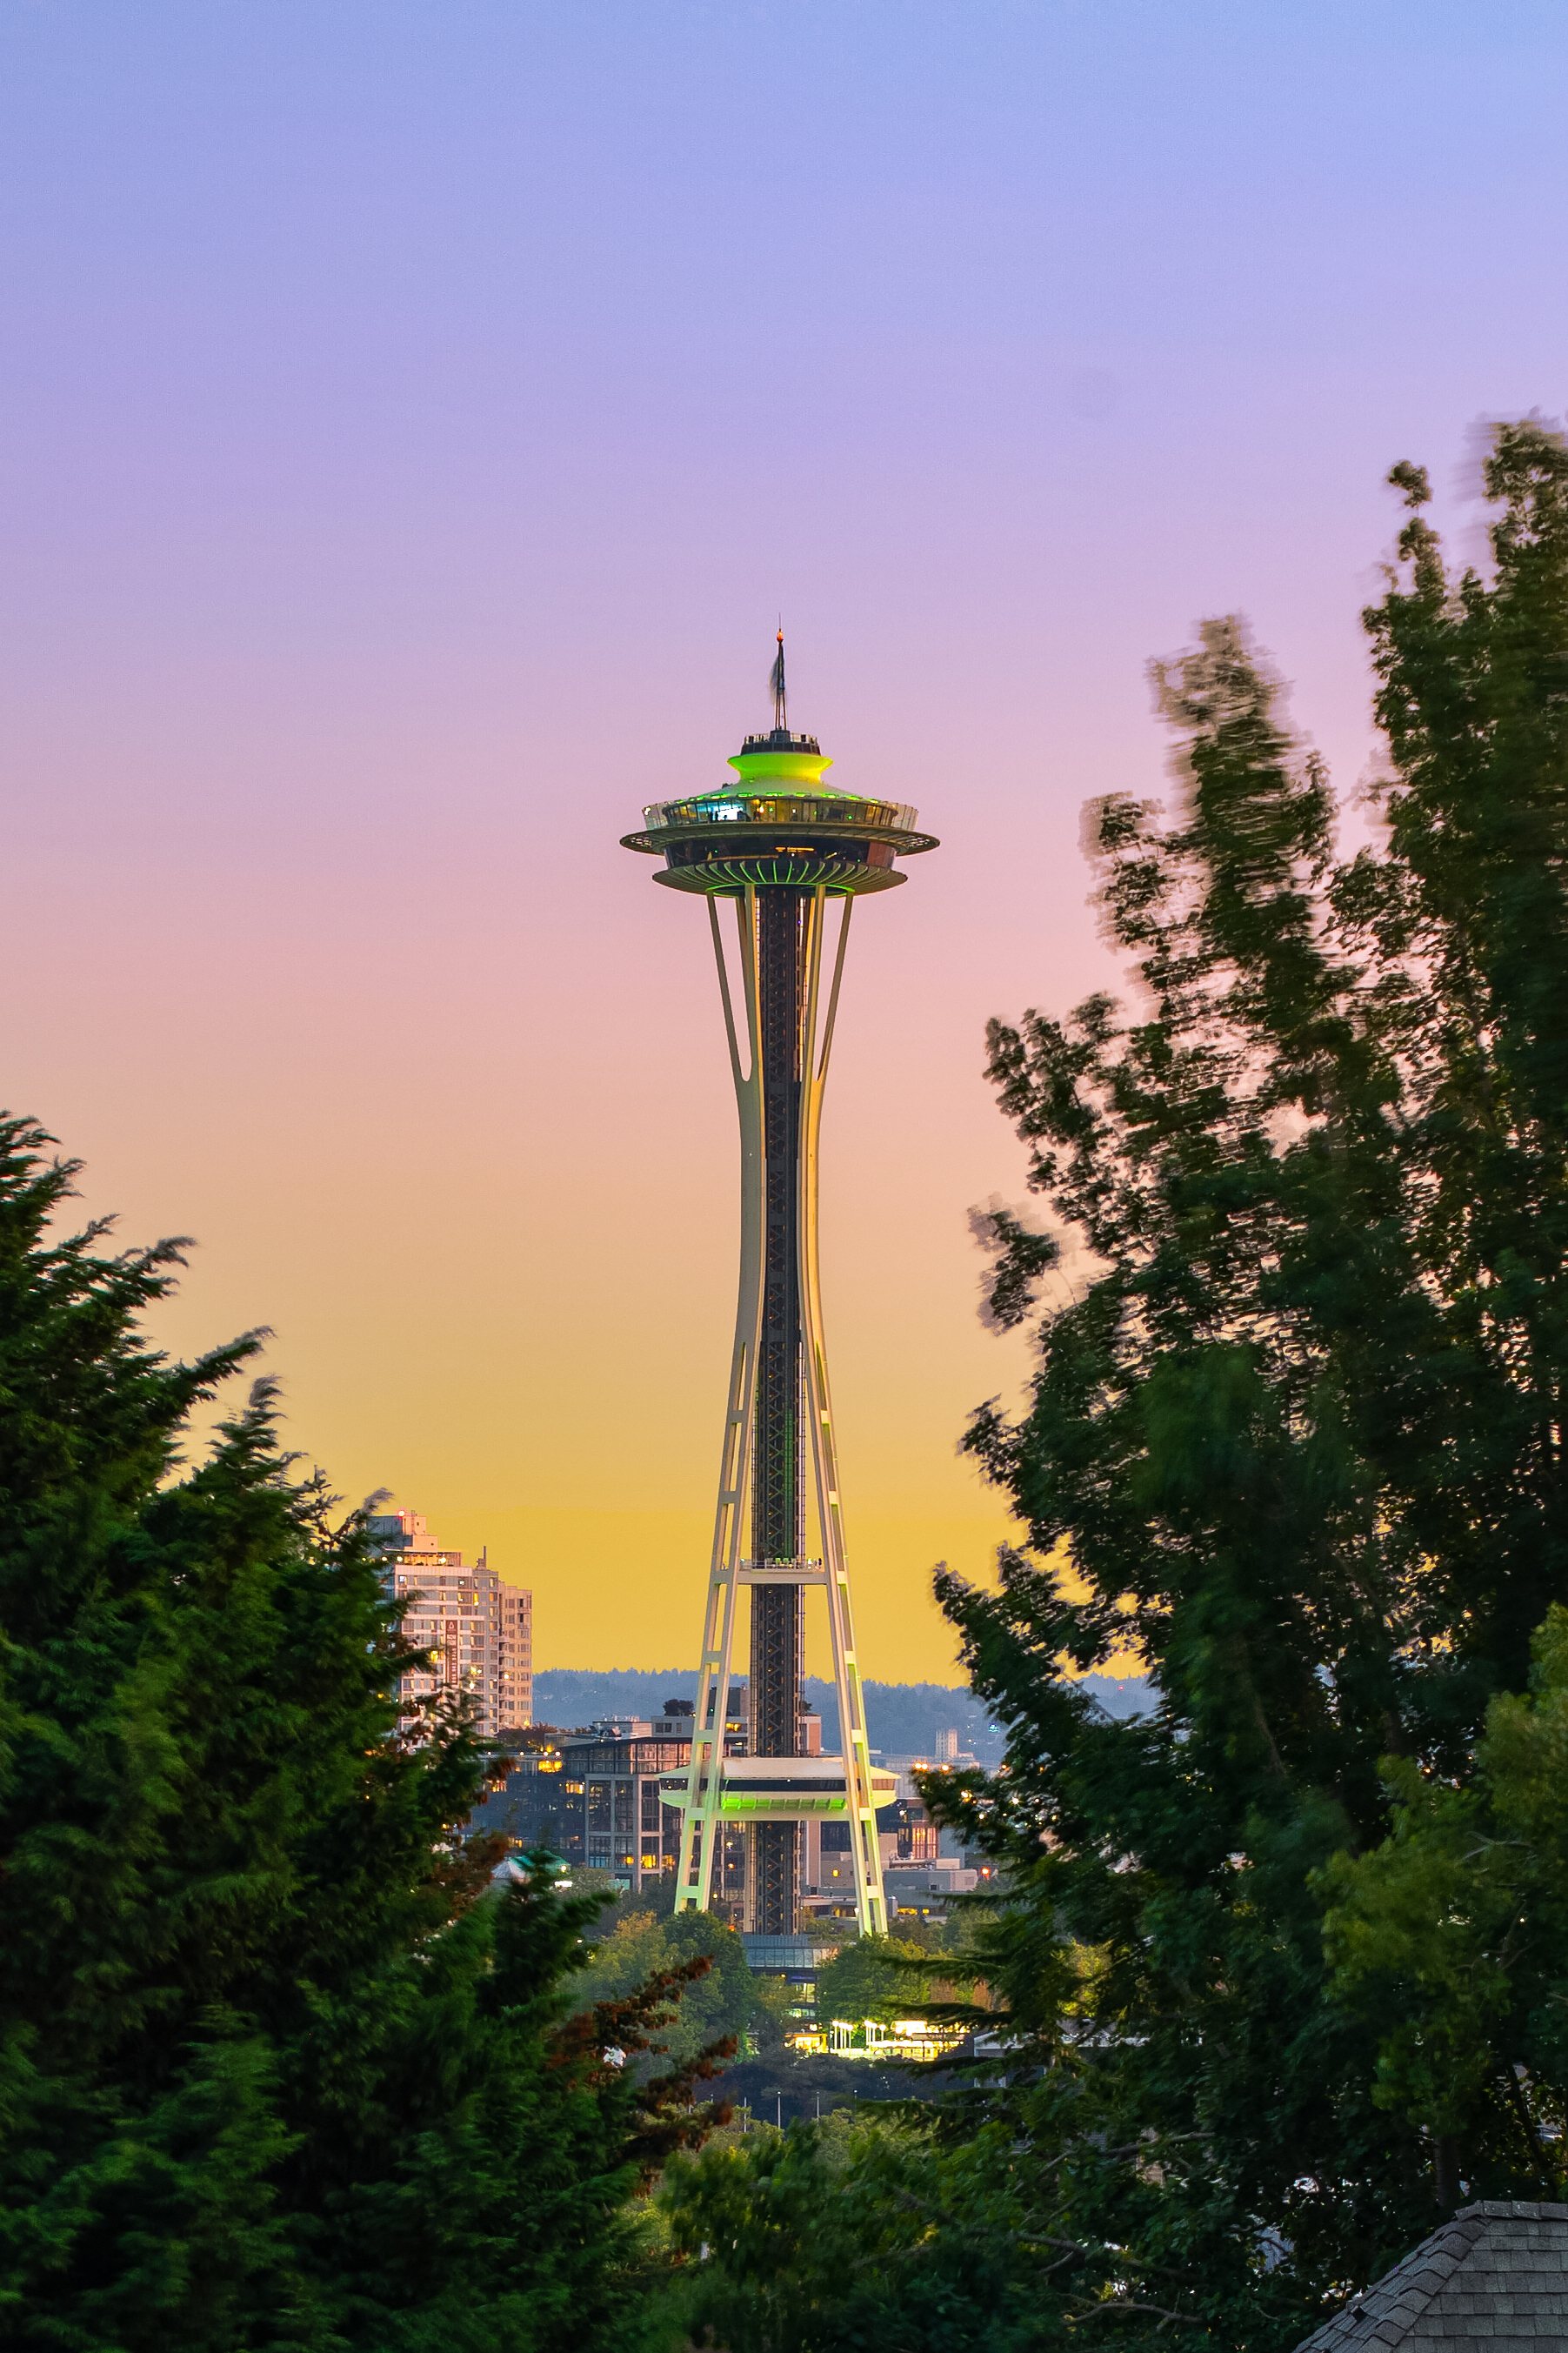 Breathtaking views of the Space Needle.